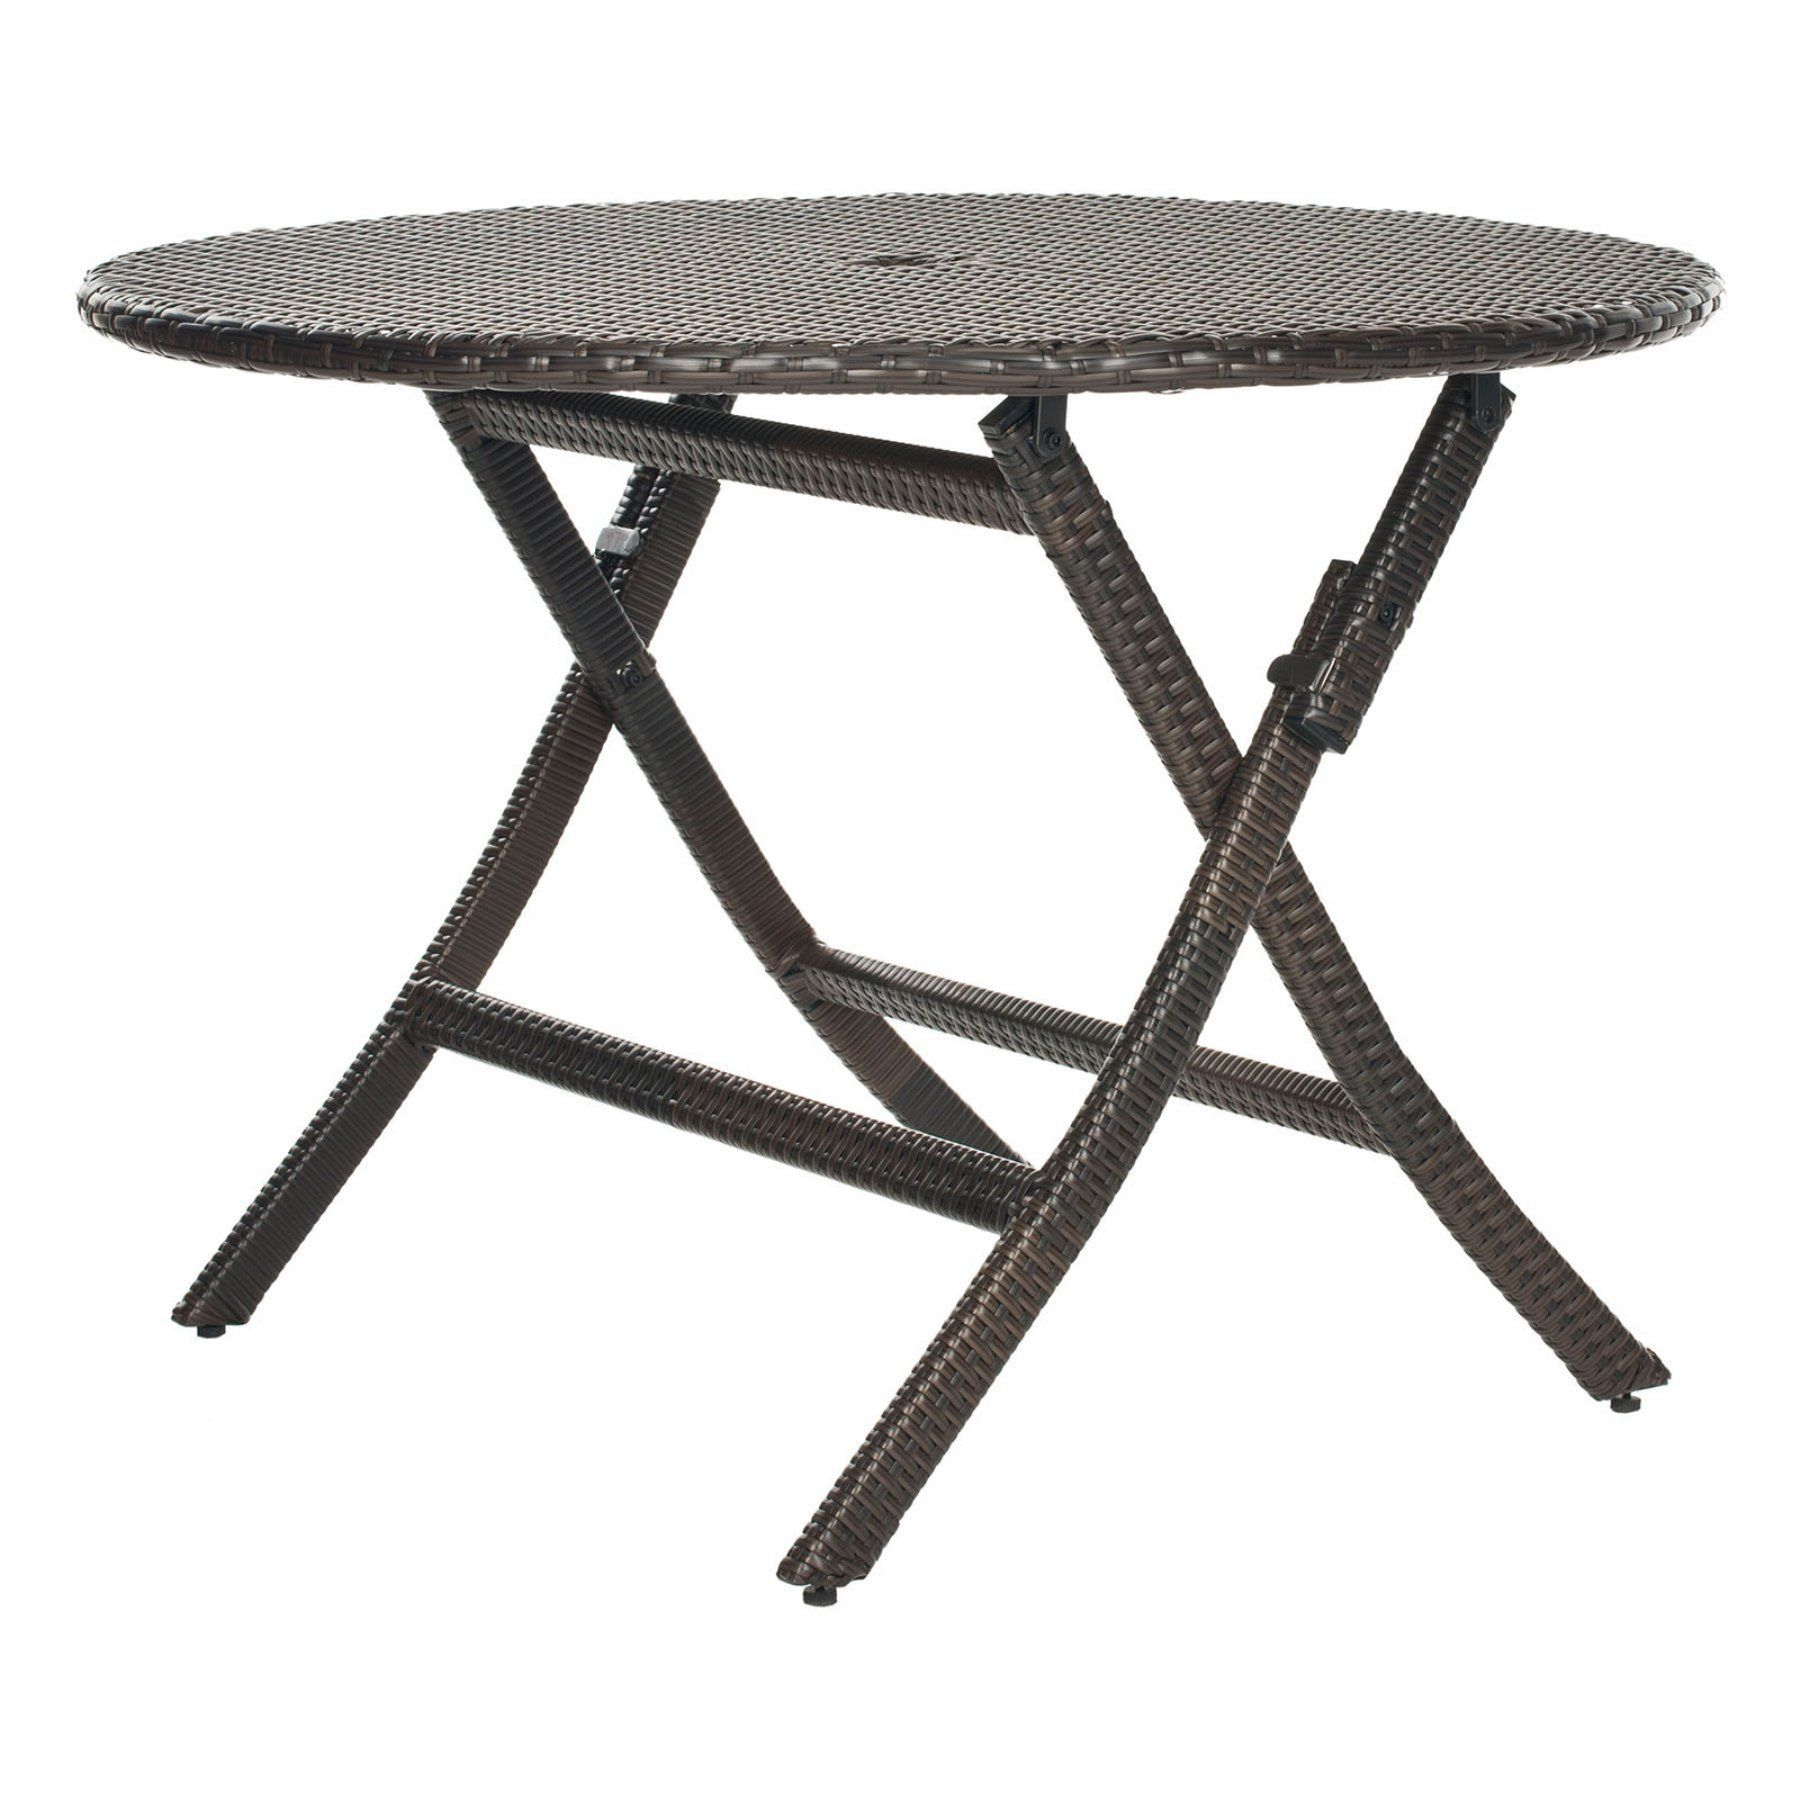 Outdoor ellis round folding patio dining table pata products